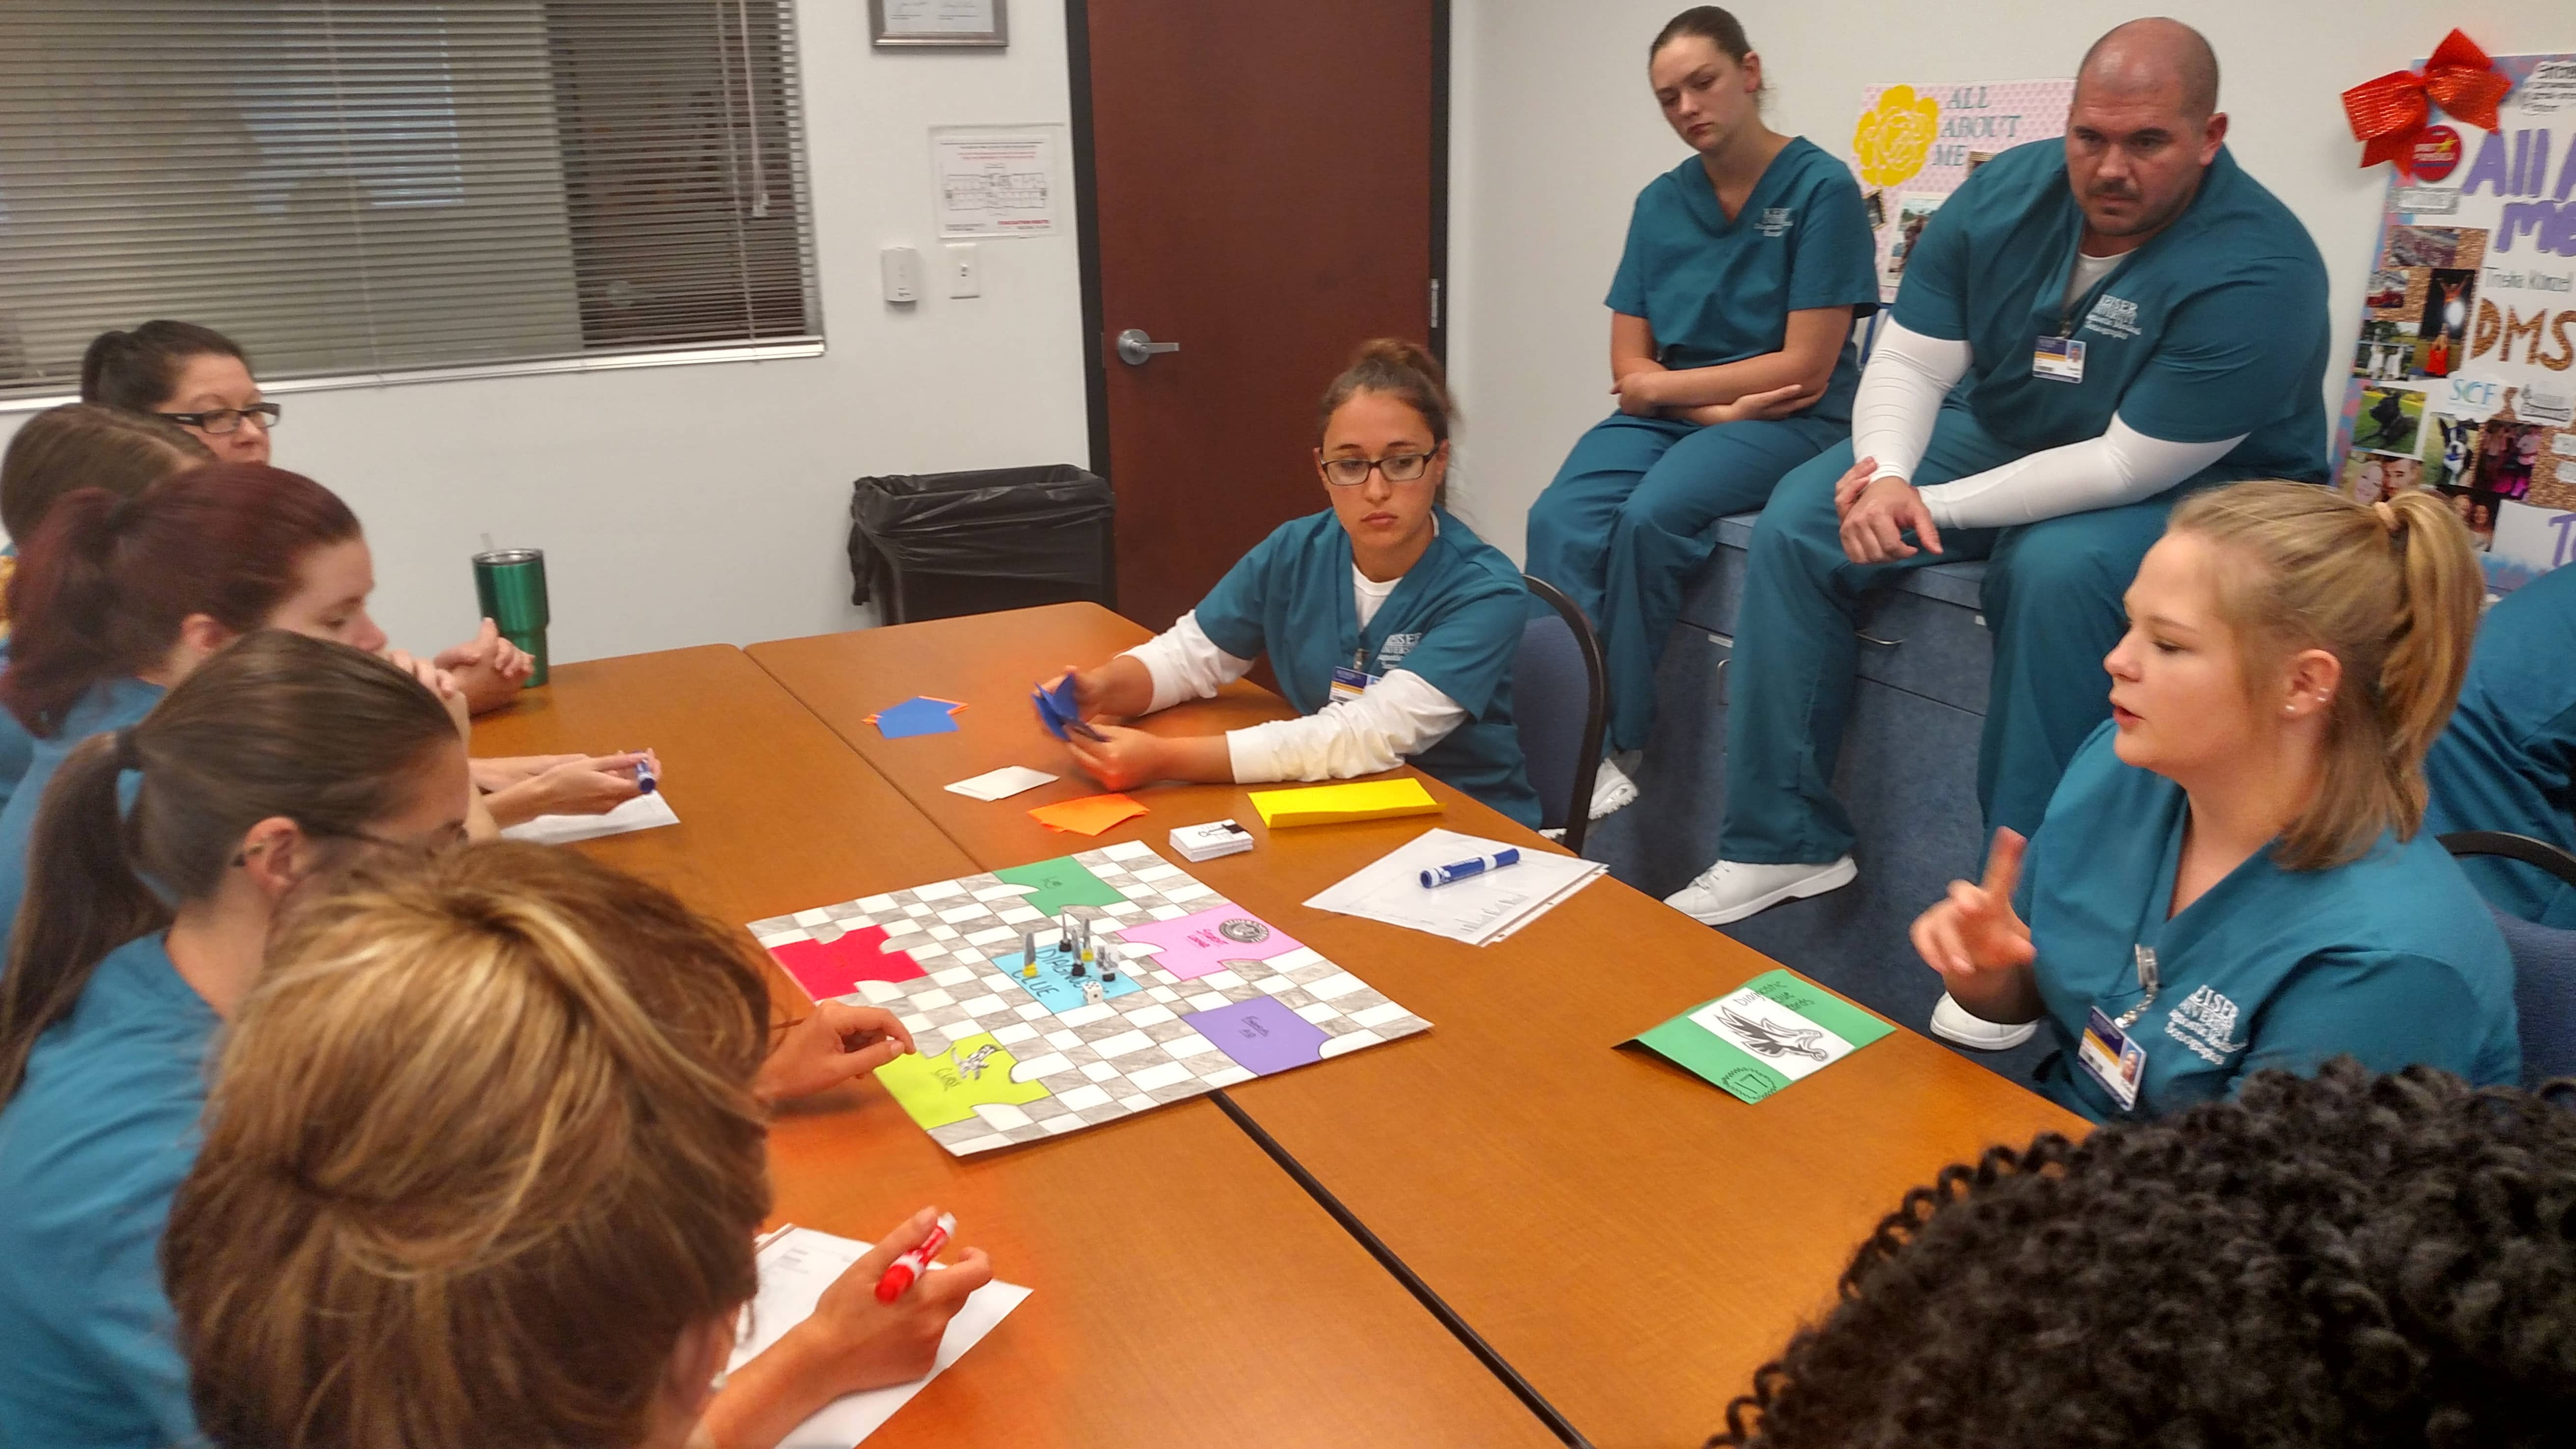 Diagnostic Clue Becomes Newest DMS Game to Sweep the Fort Myers Program